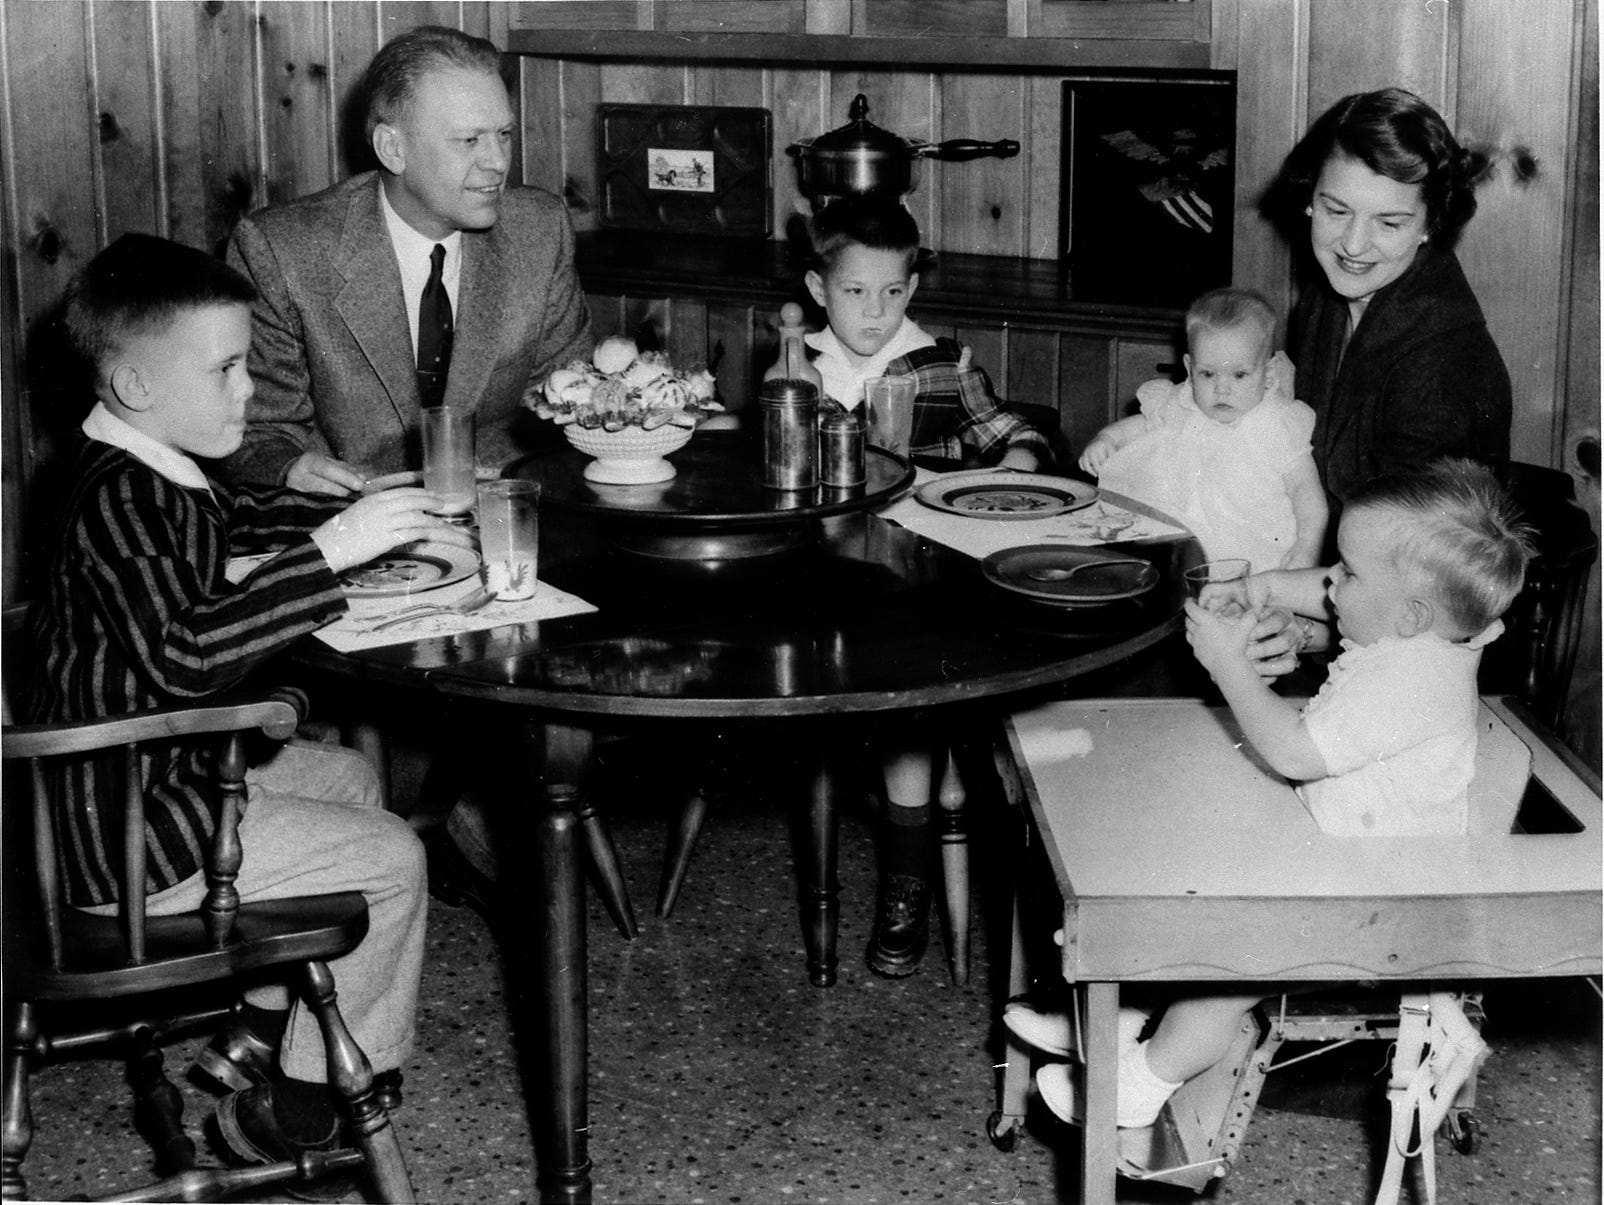 Mike, Jerry, Jack, baby Susan, Betty, and Steve (in highchair) in the kitchen of their home at 514 Crown View Drive, 1958.